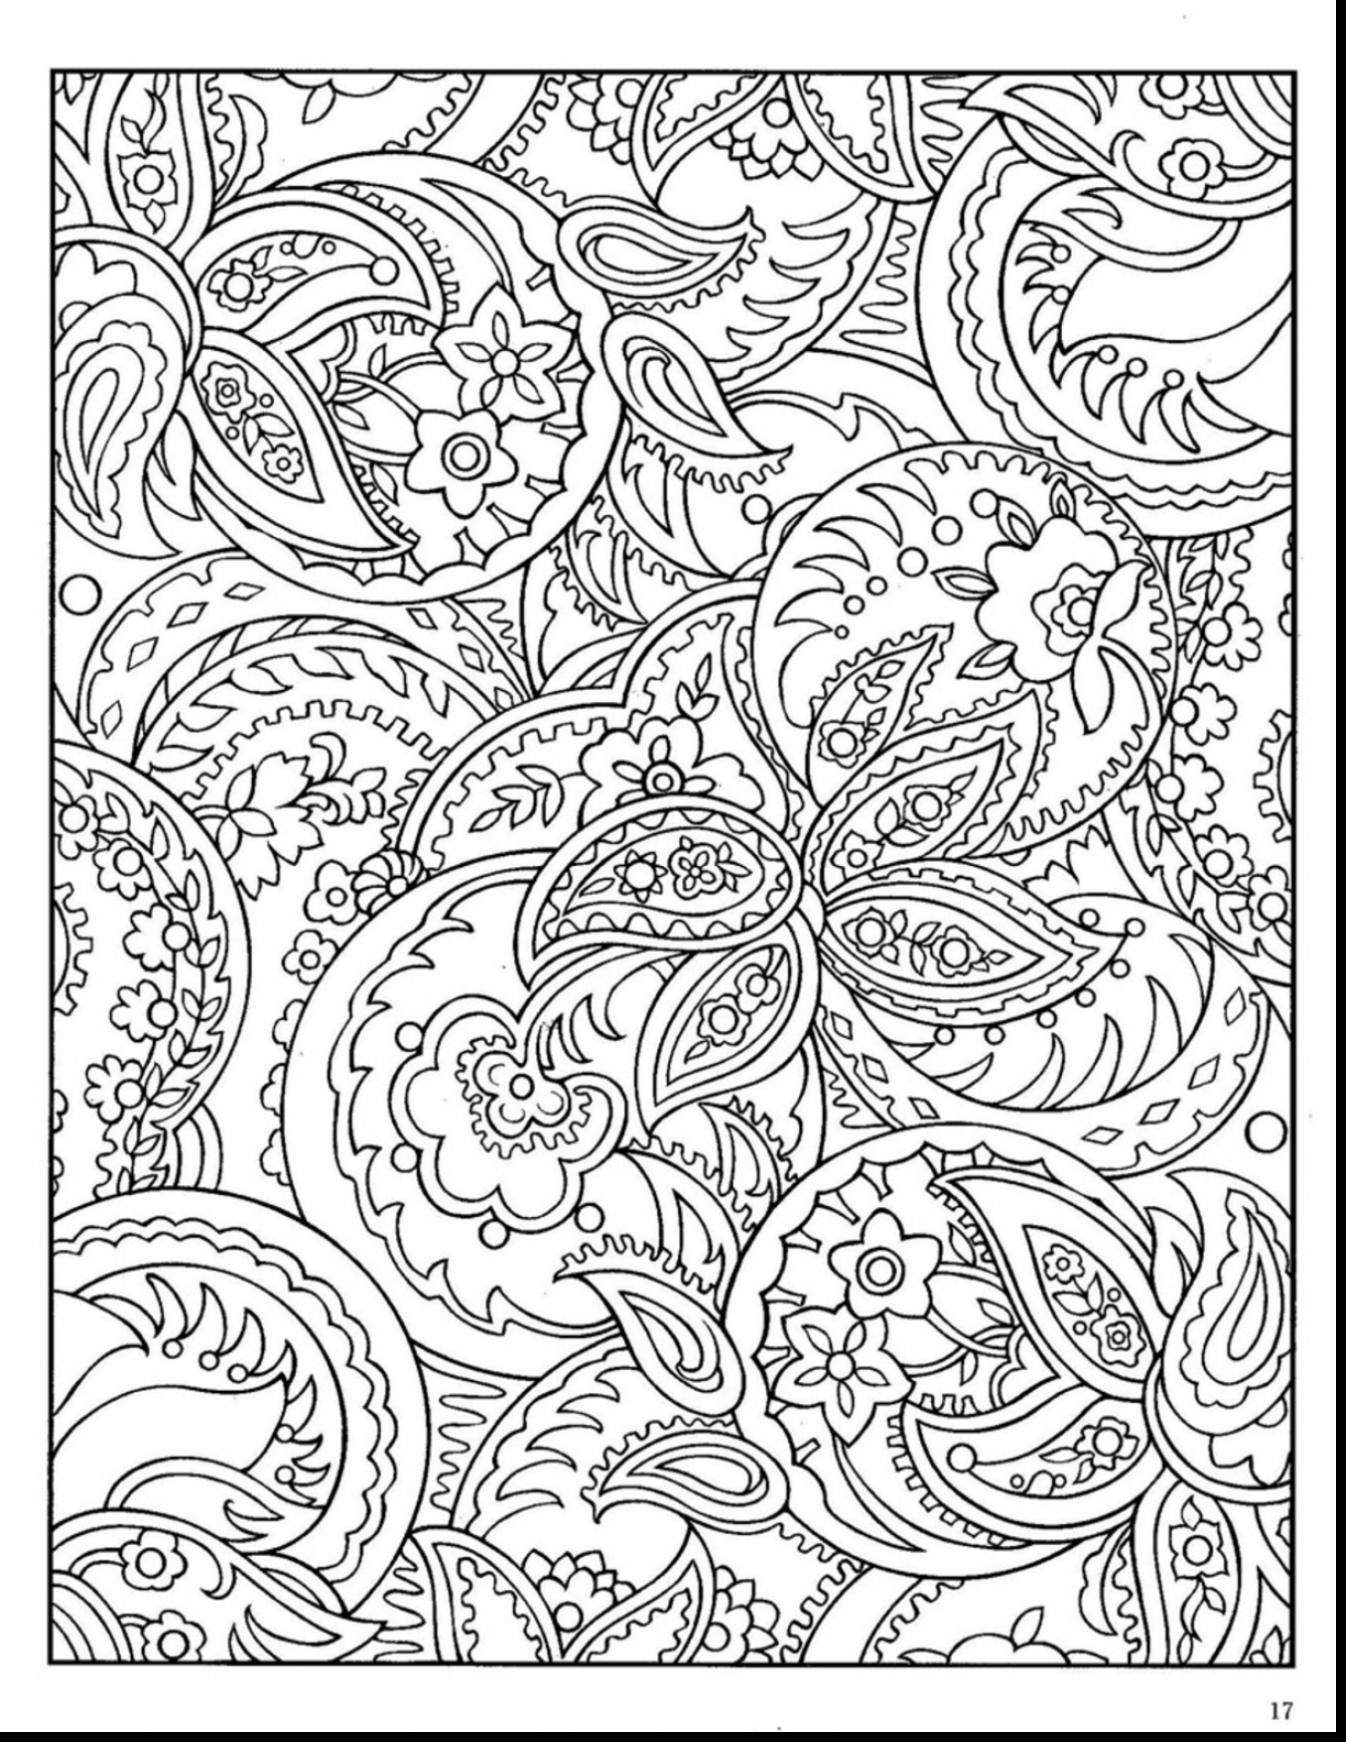 Paisley Design Drawing at GetDrawings.com | Free for personal use ...